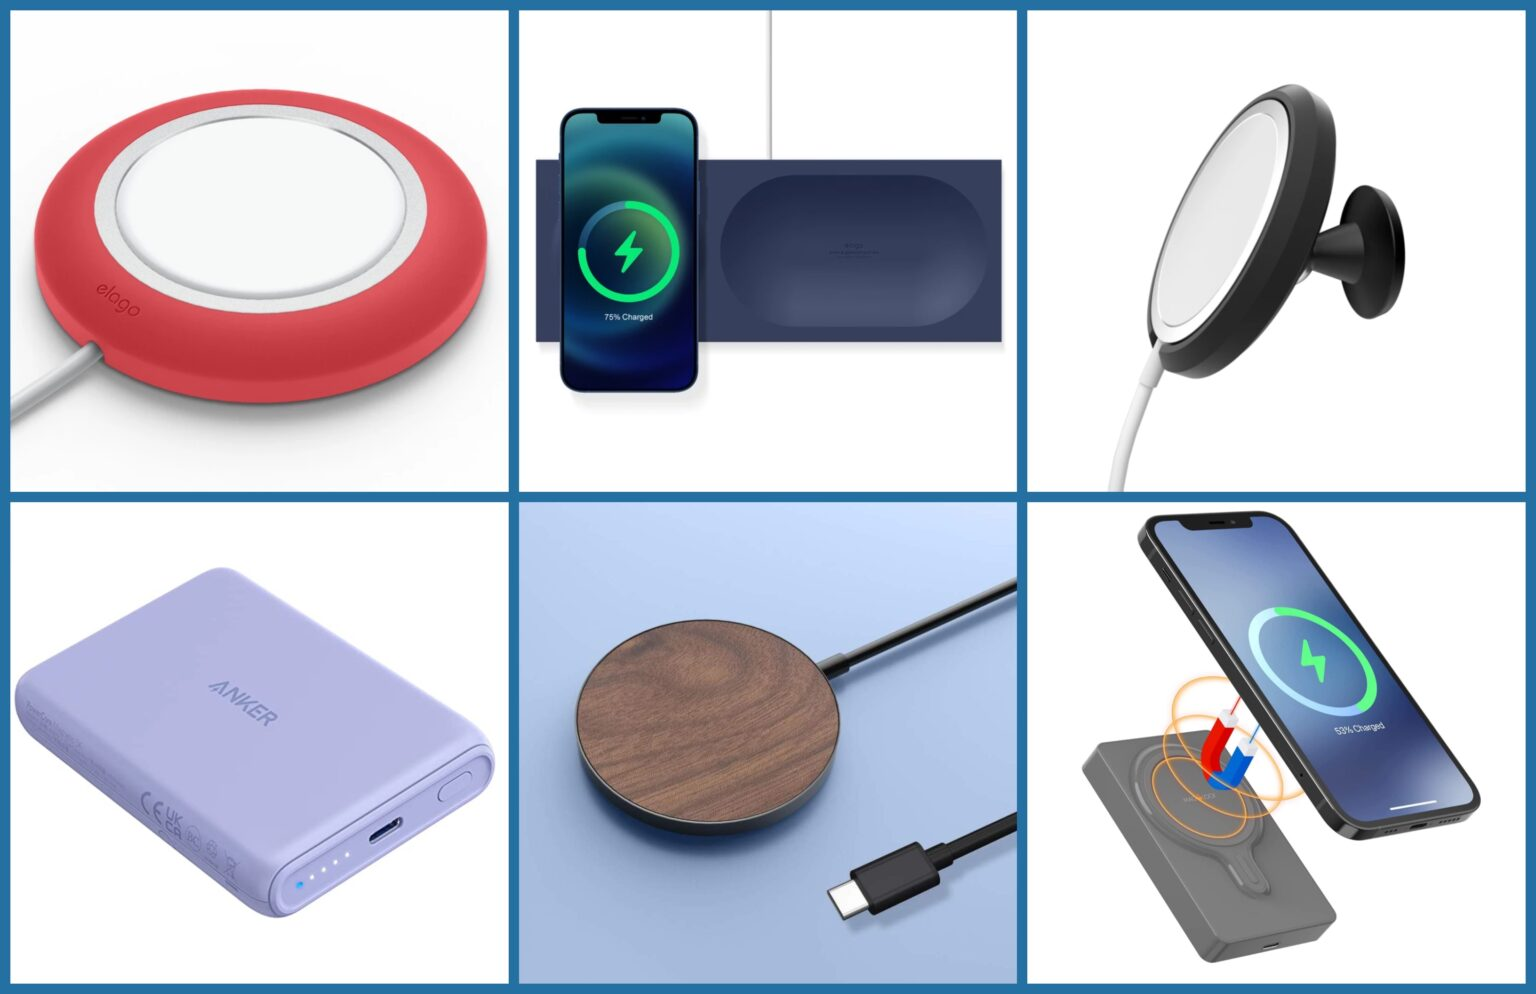 Best MagSafe accessories for AirPods